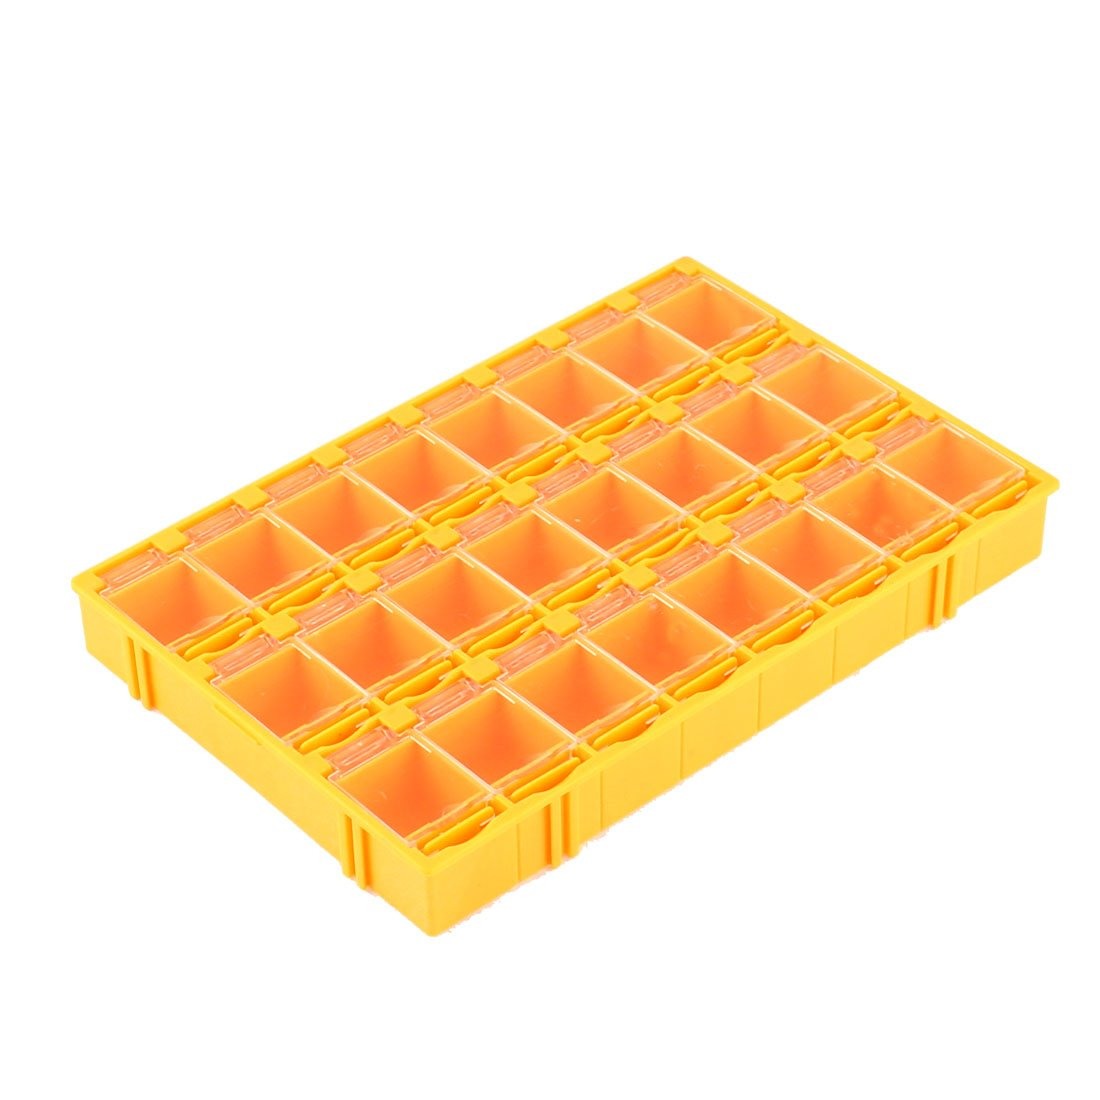 Uxcell a16010300ux0102 Plastic 24 Compartments Electronic Components Storage Box Case